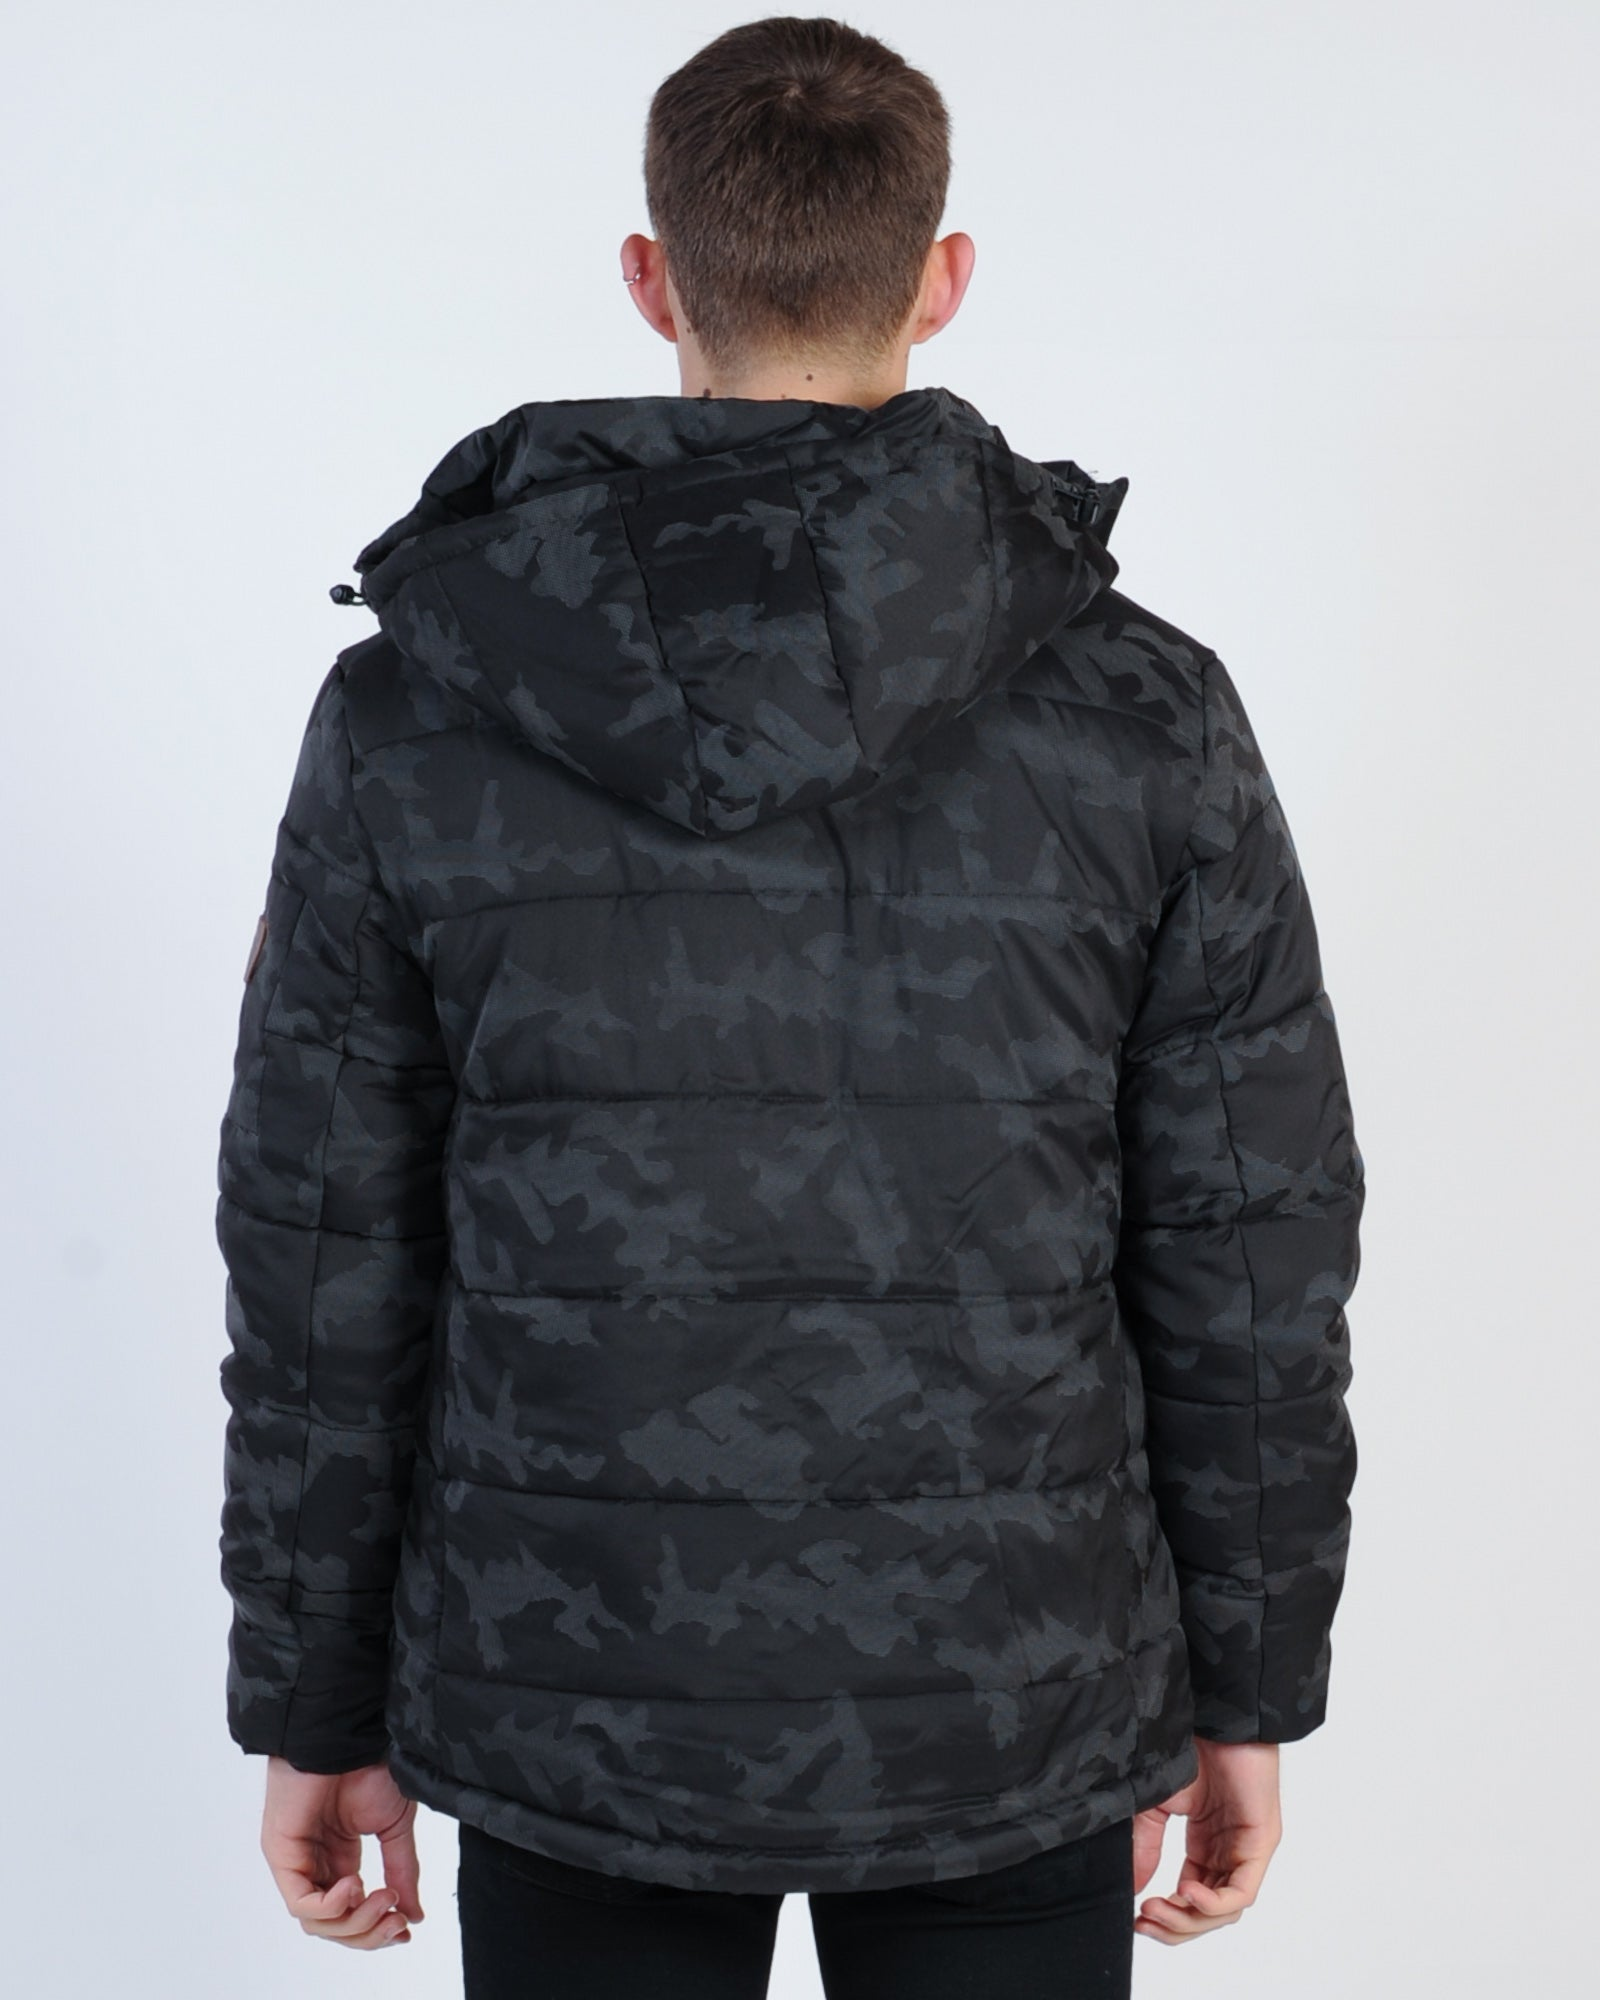 St. Goliath Sabre Puffer Jacket - Black Camo